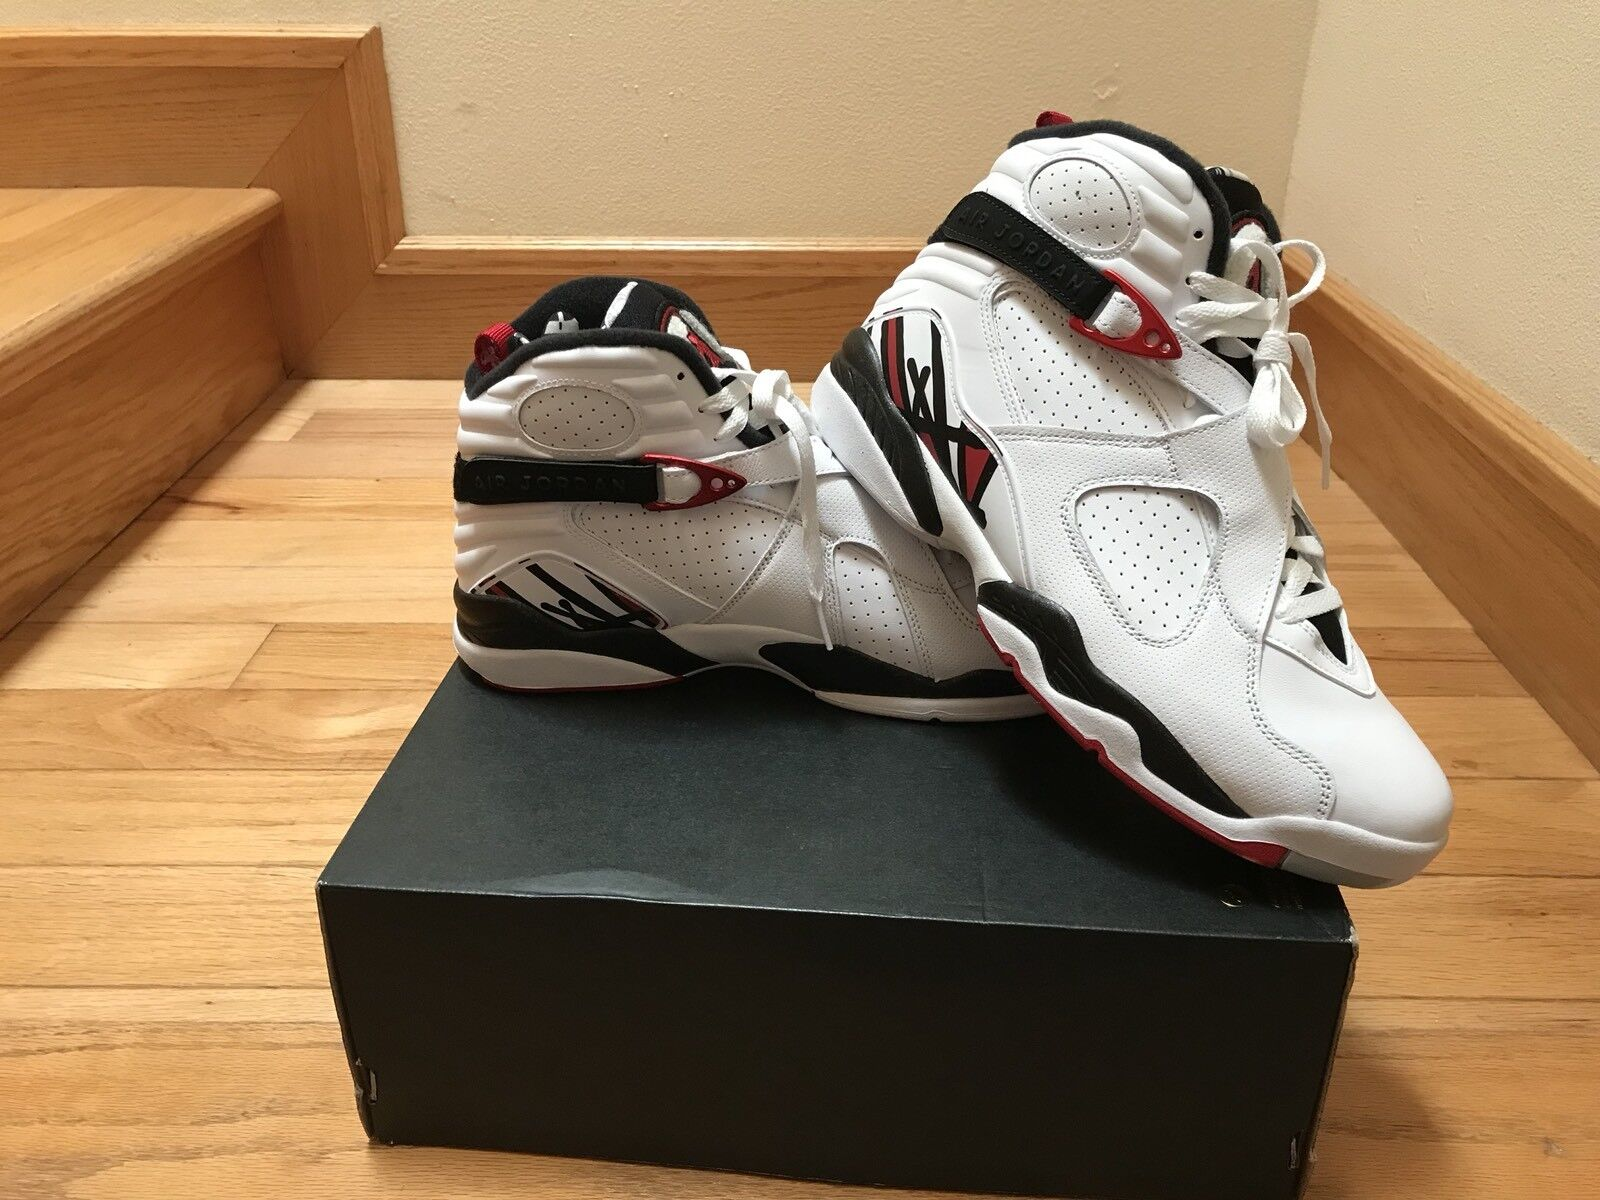 Mens Air Jordan 8 Retro 305381-104 White Gym Red Brand New Size 10